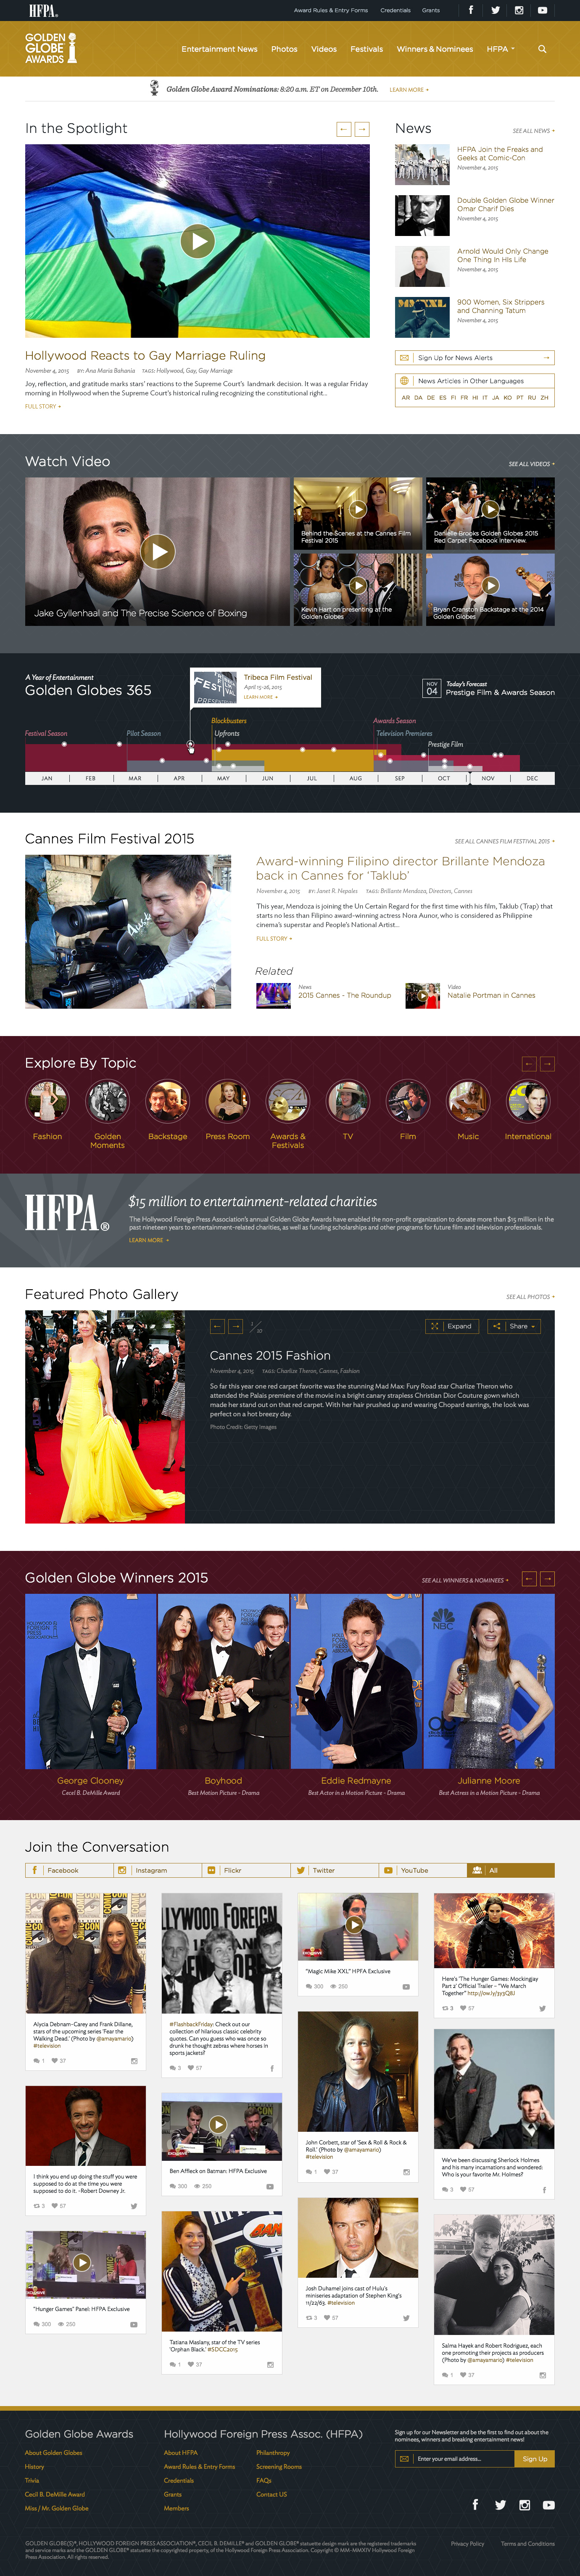 Golden Globes home page